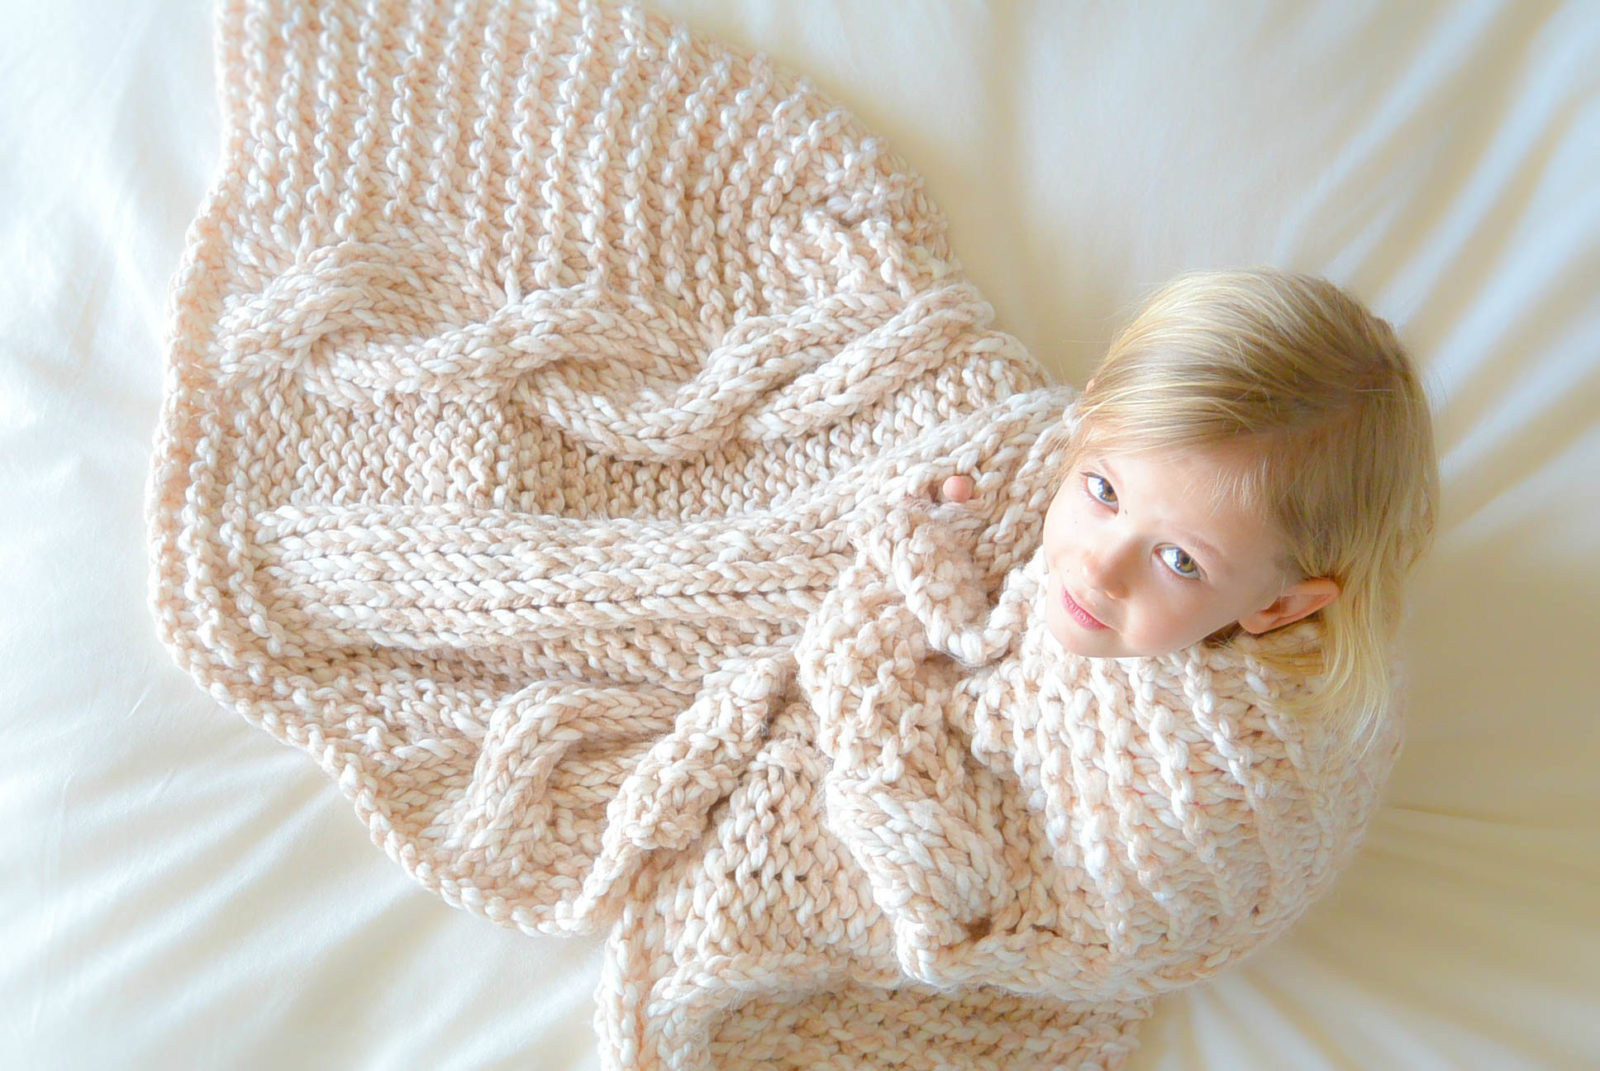 Chunky Knit Blanket Pattern Beautiful Endless Cables Chunky Knit Throw Pattern – Mama In A Stitch Of Delightful 41 Pictures Chunky Knit Blanket Pattern